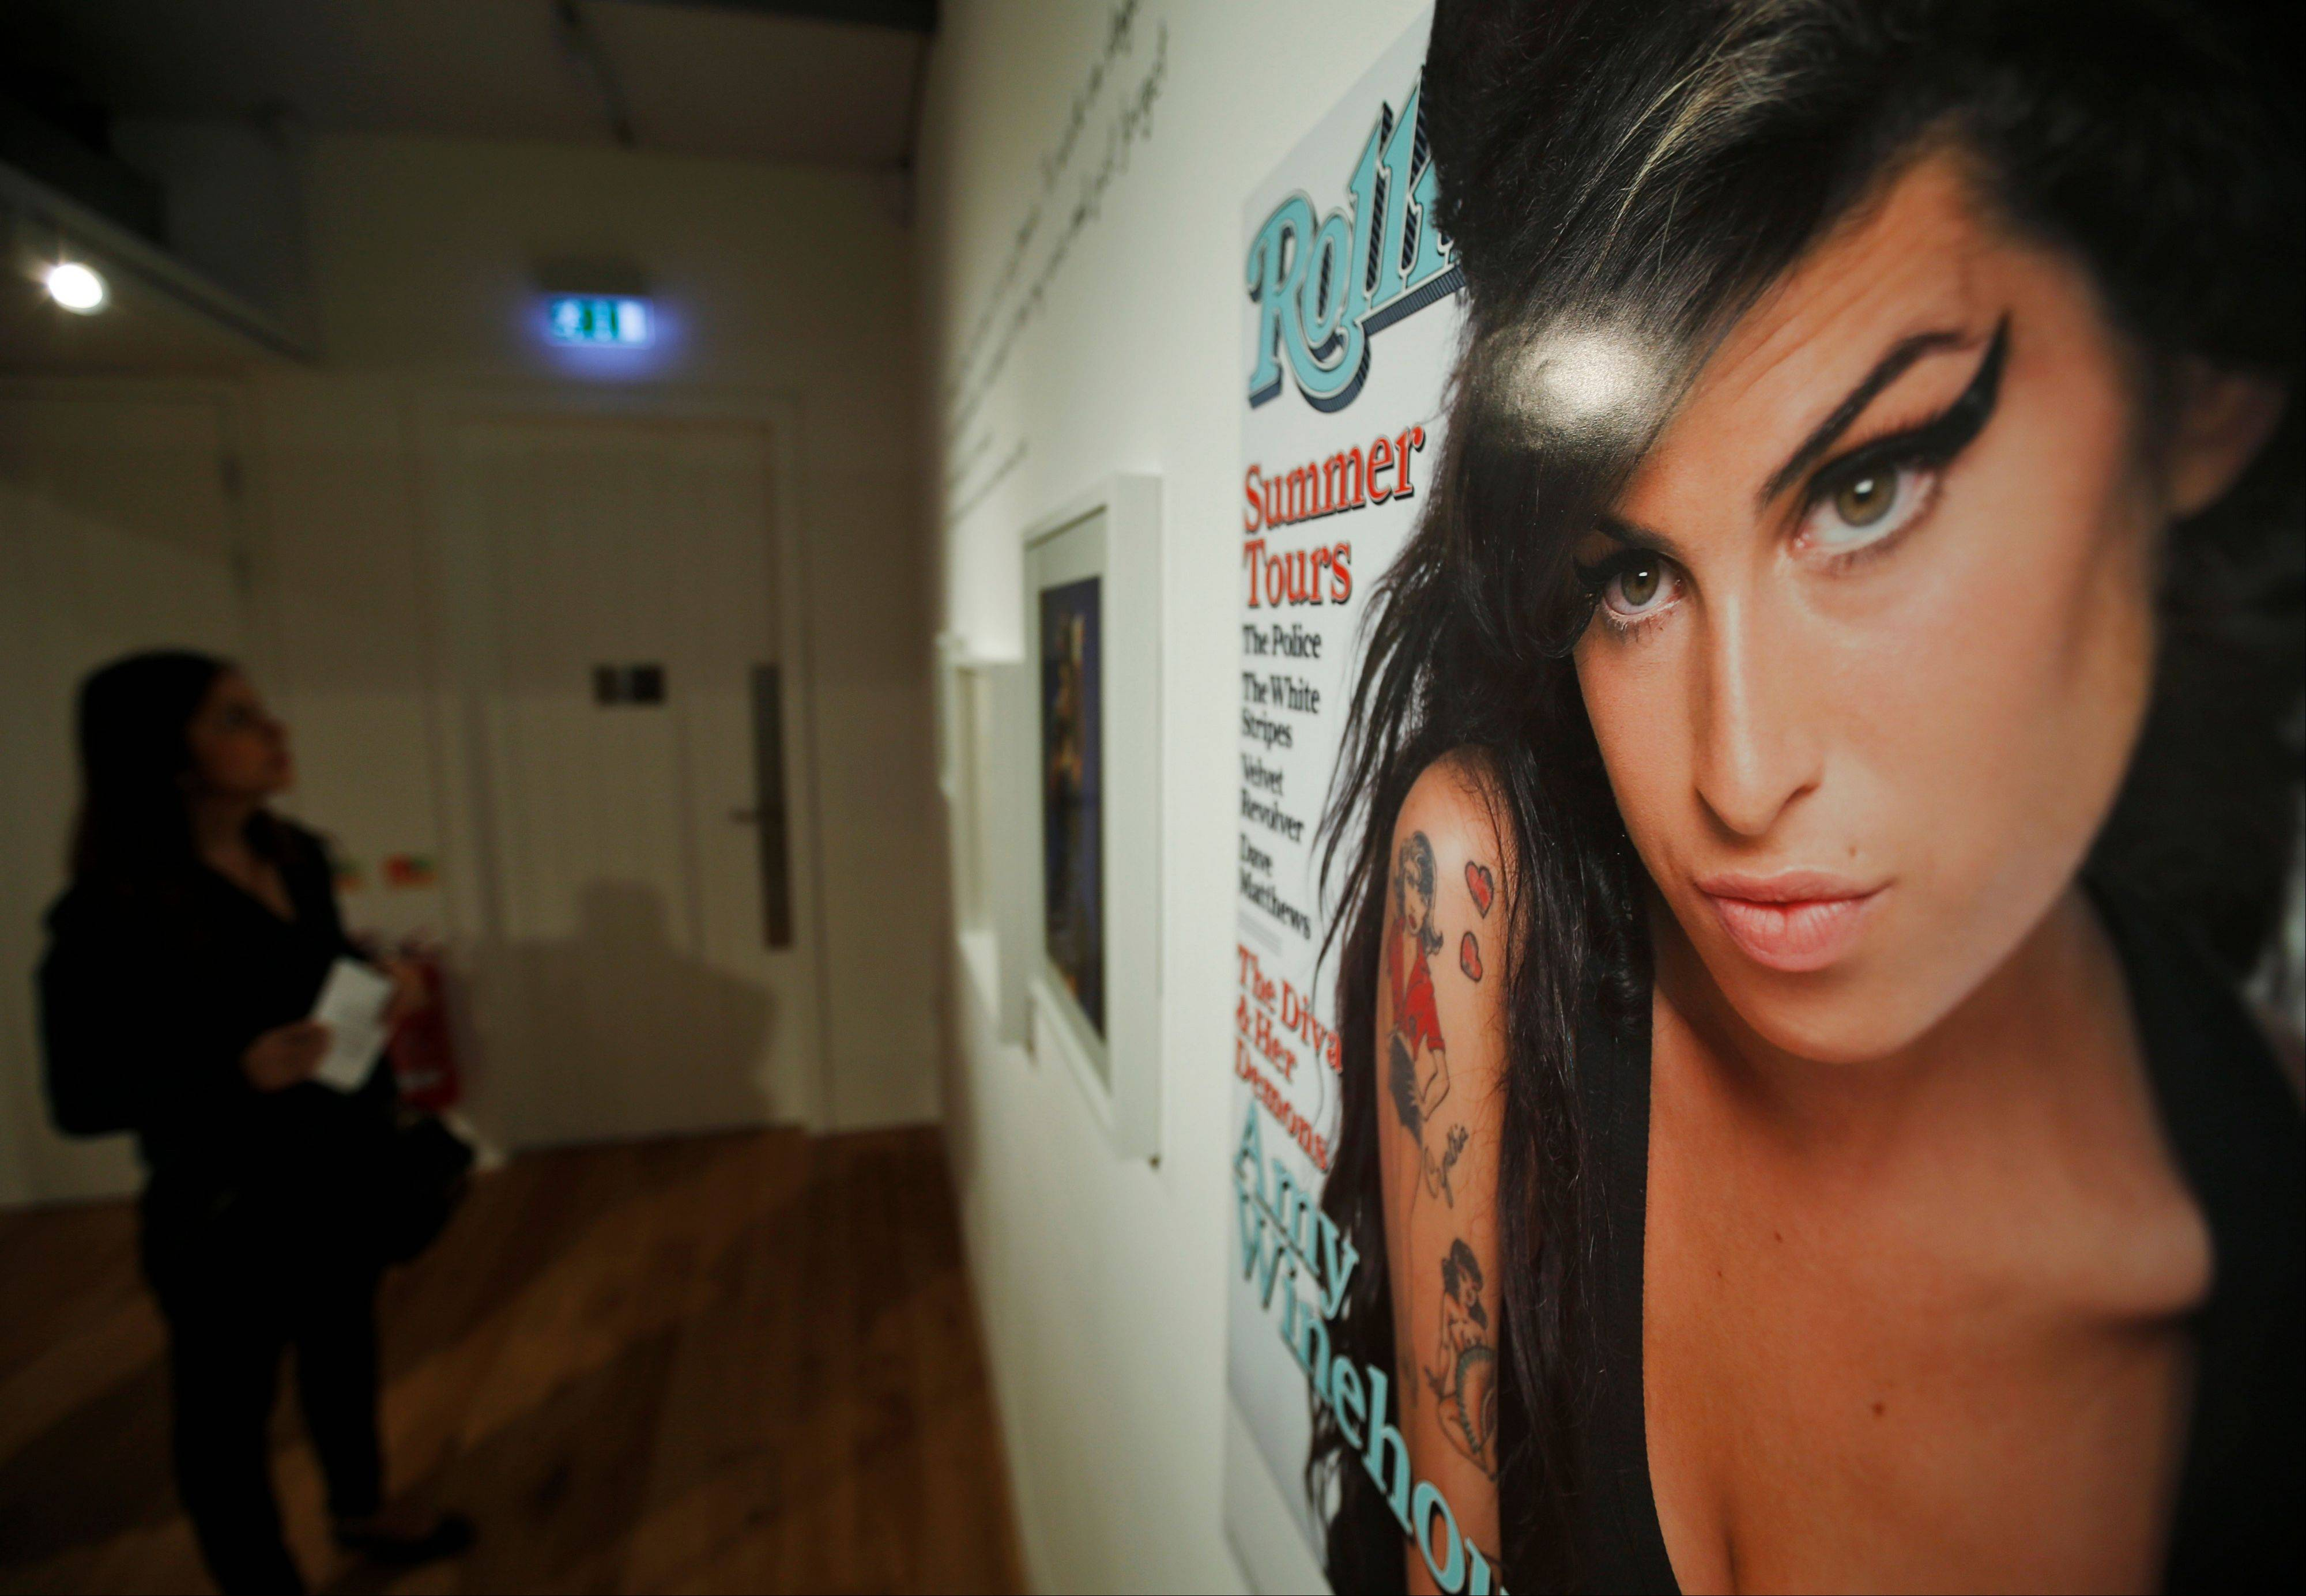 An exhibition entitled �Amy Winehouse: A Family Portrait� in London�s Jewish Museum. The exhibition aims to reveal an intimate side of the late soul diva.